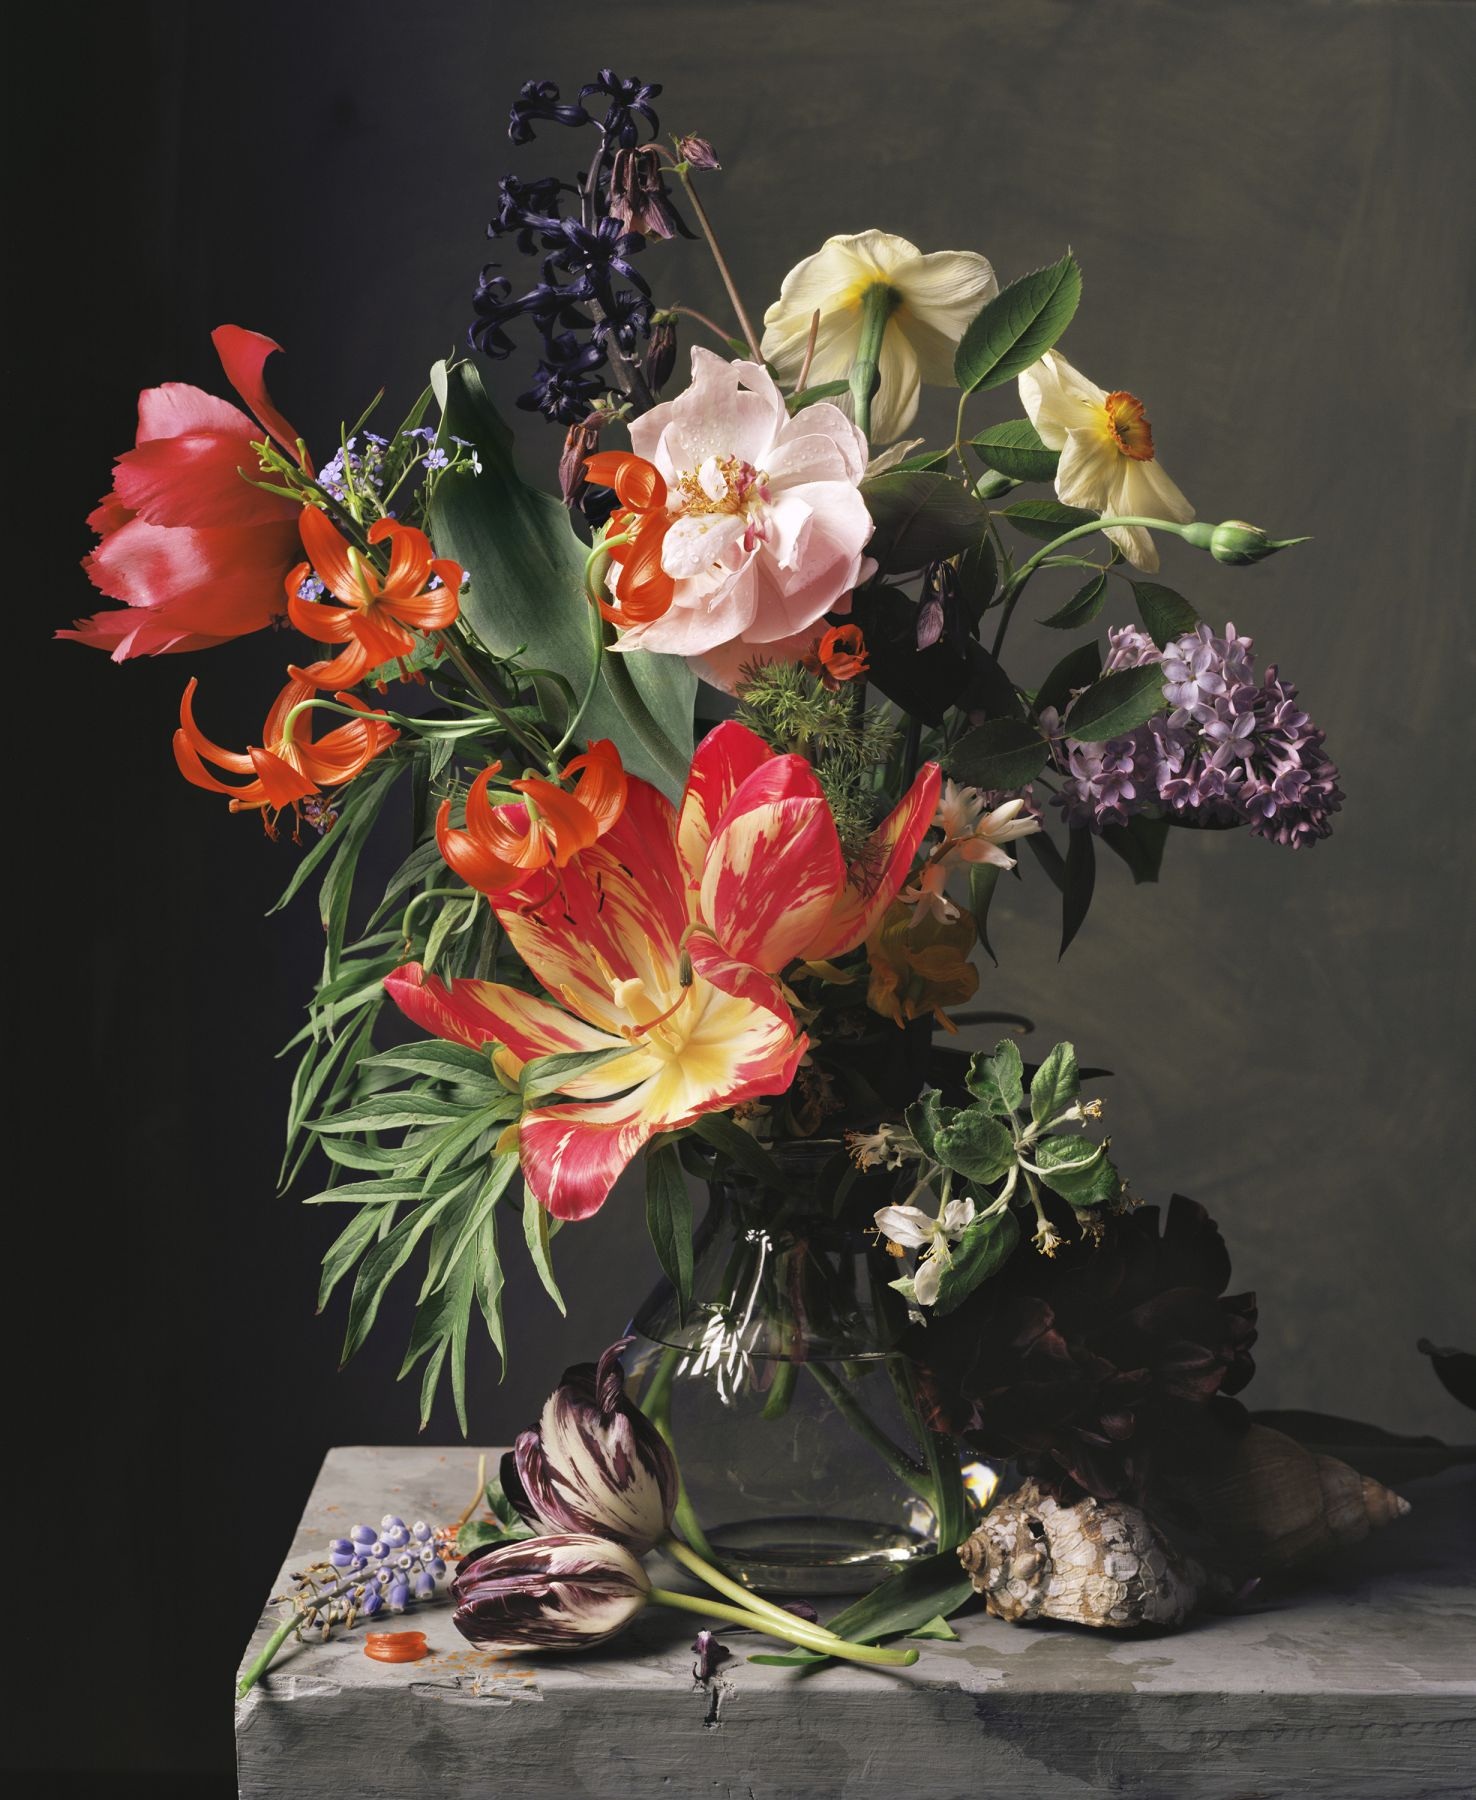 Photograph by Sharon Core titled 1661 from the series 1606-1907 of a floral still life arranged in the style of a classical painting